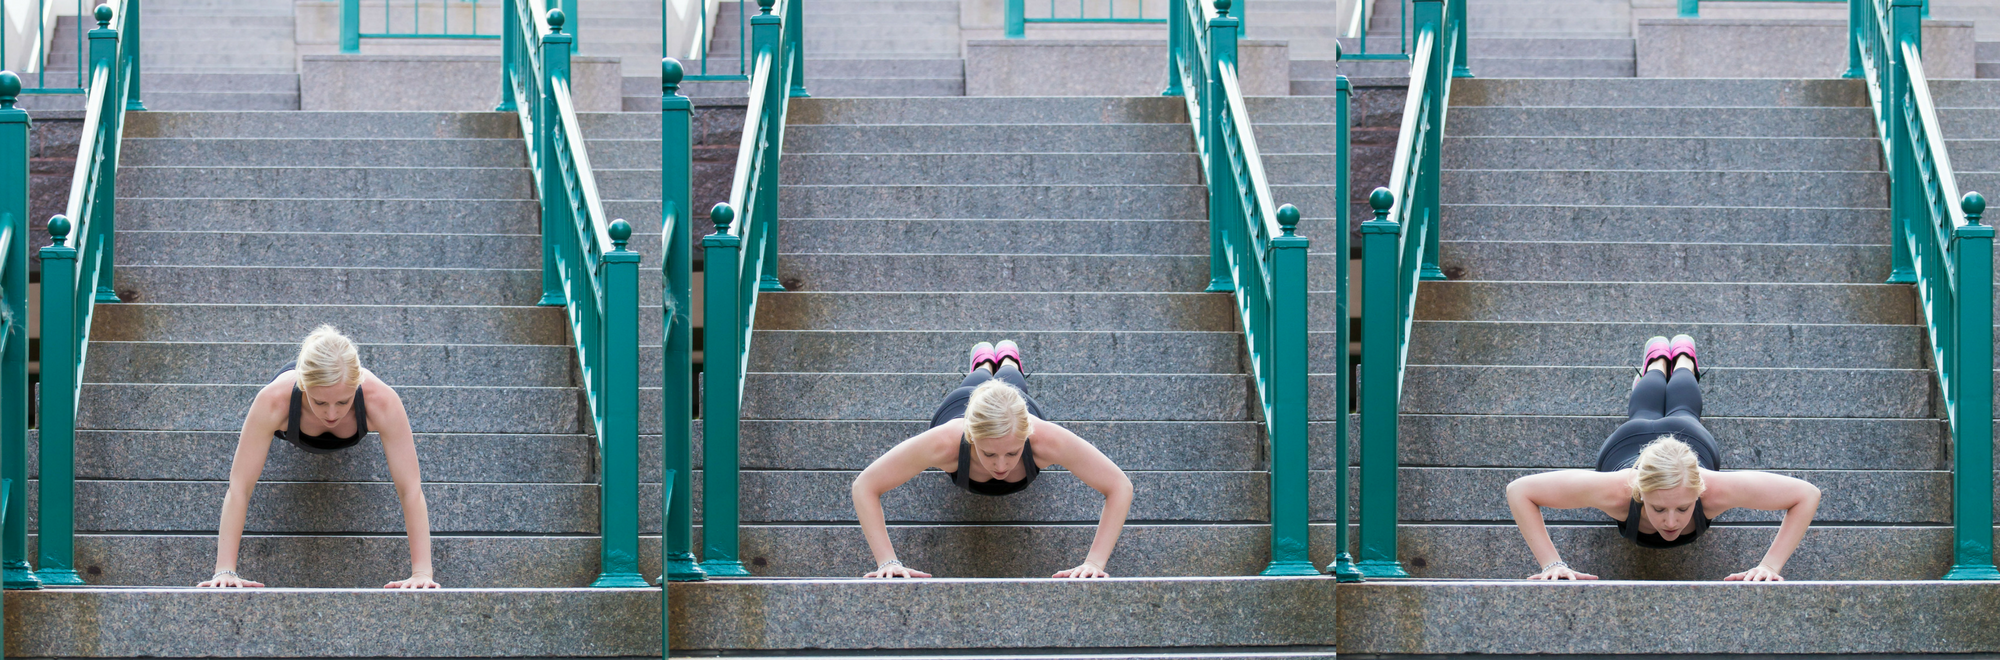 Decline push-ups, push ups, stair push-ups, stair workout, outdoor workout, short workout,